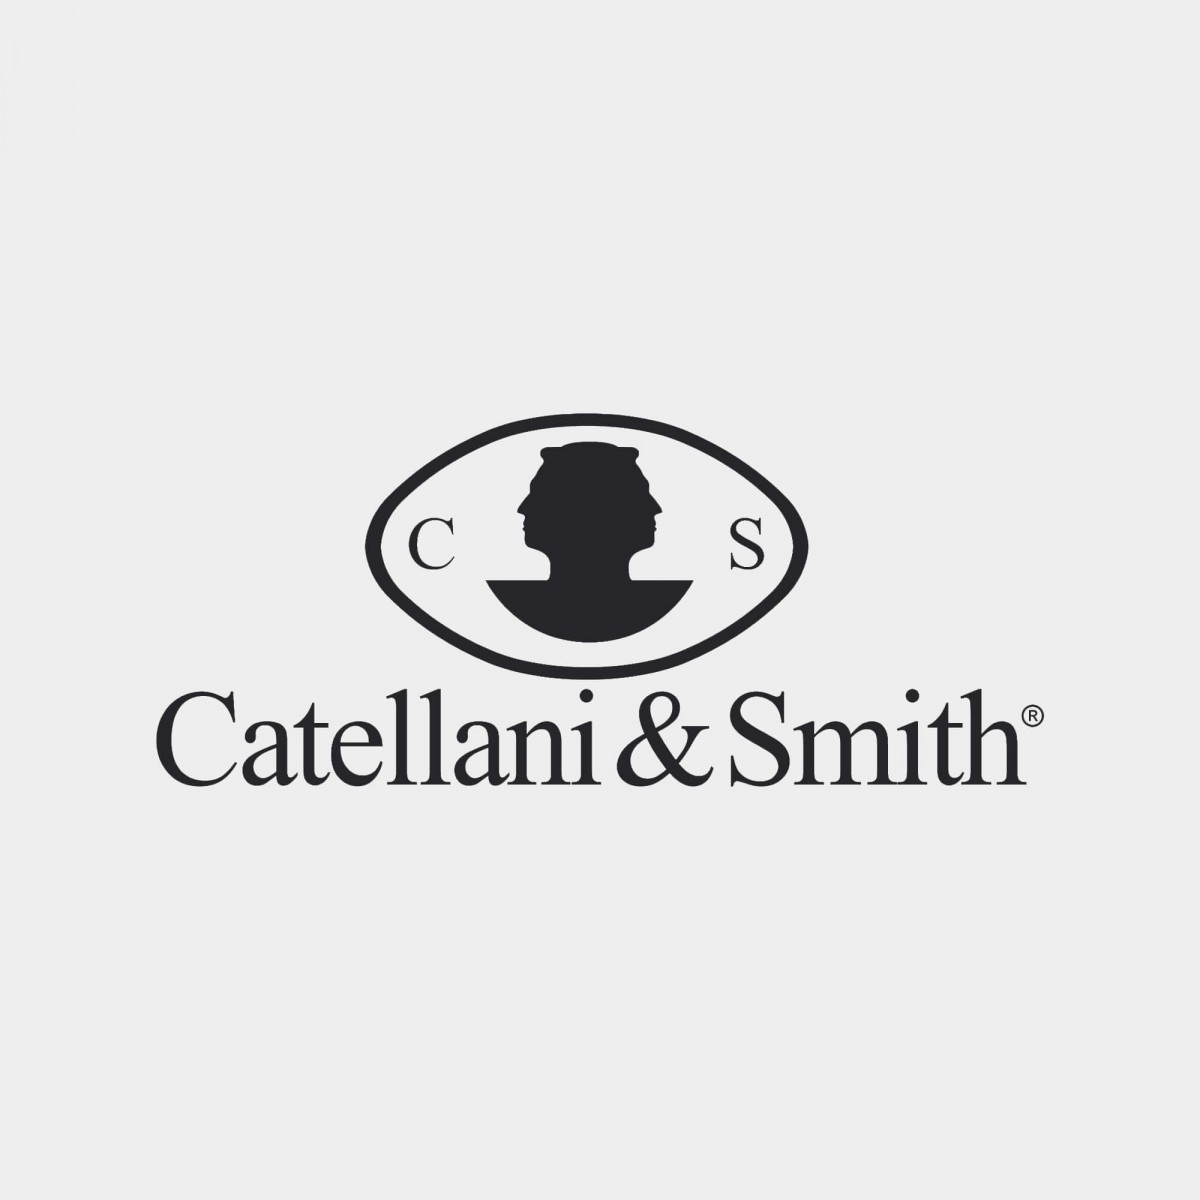 Catellani & Smith Logo